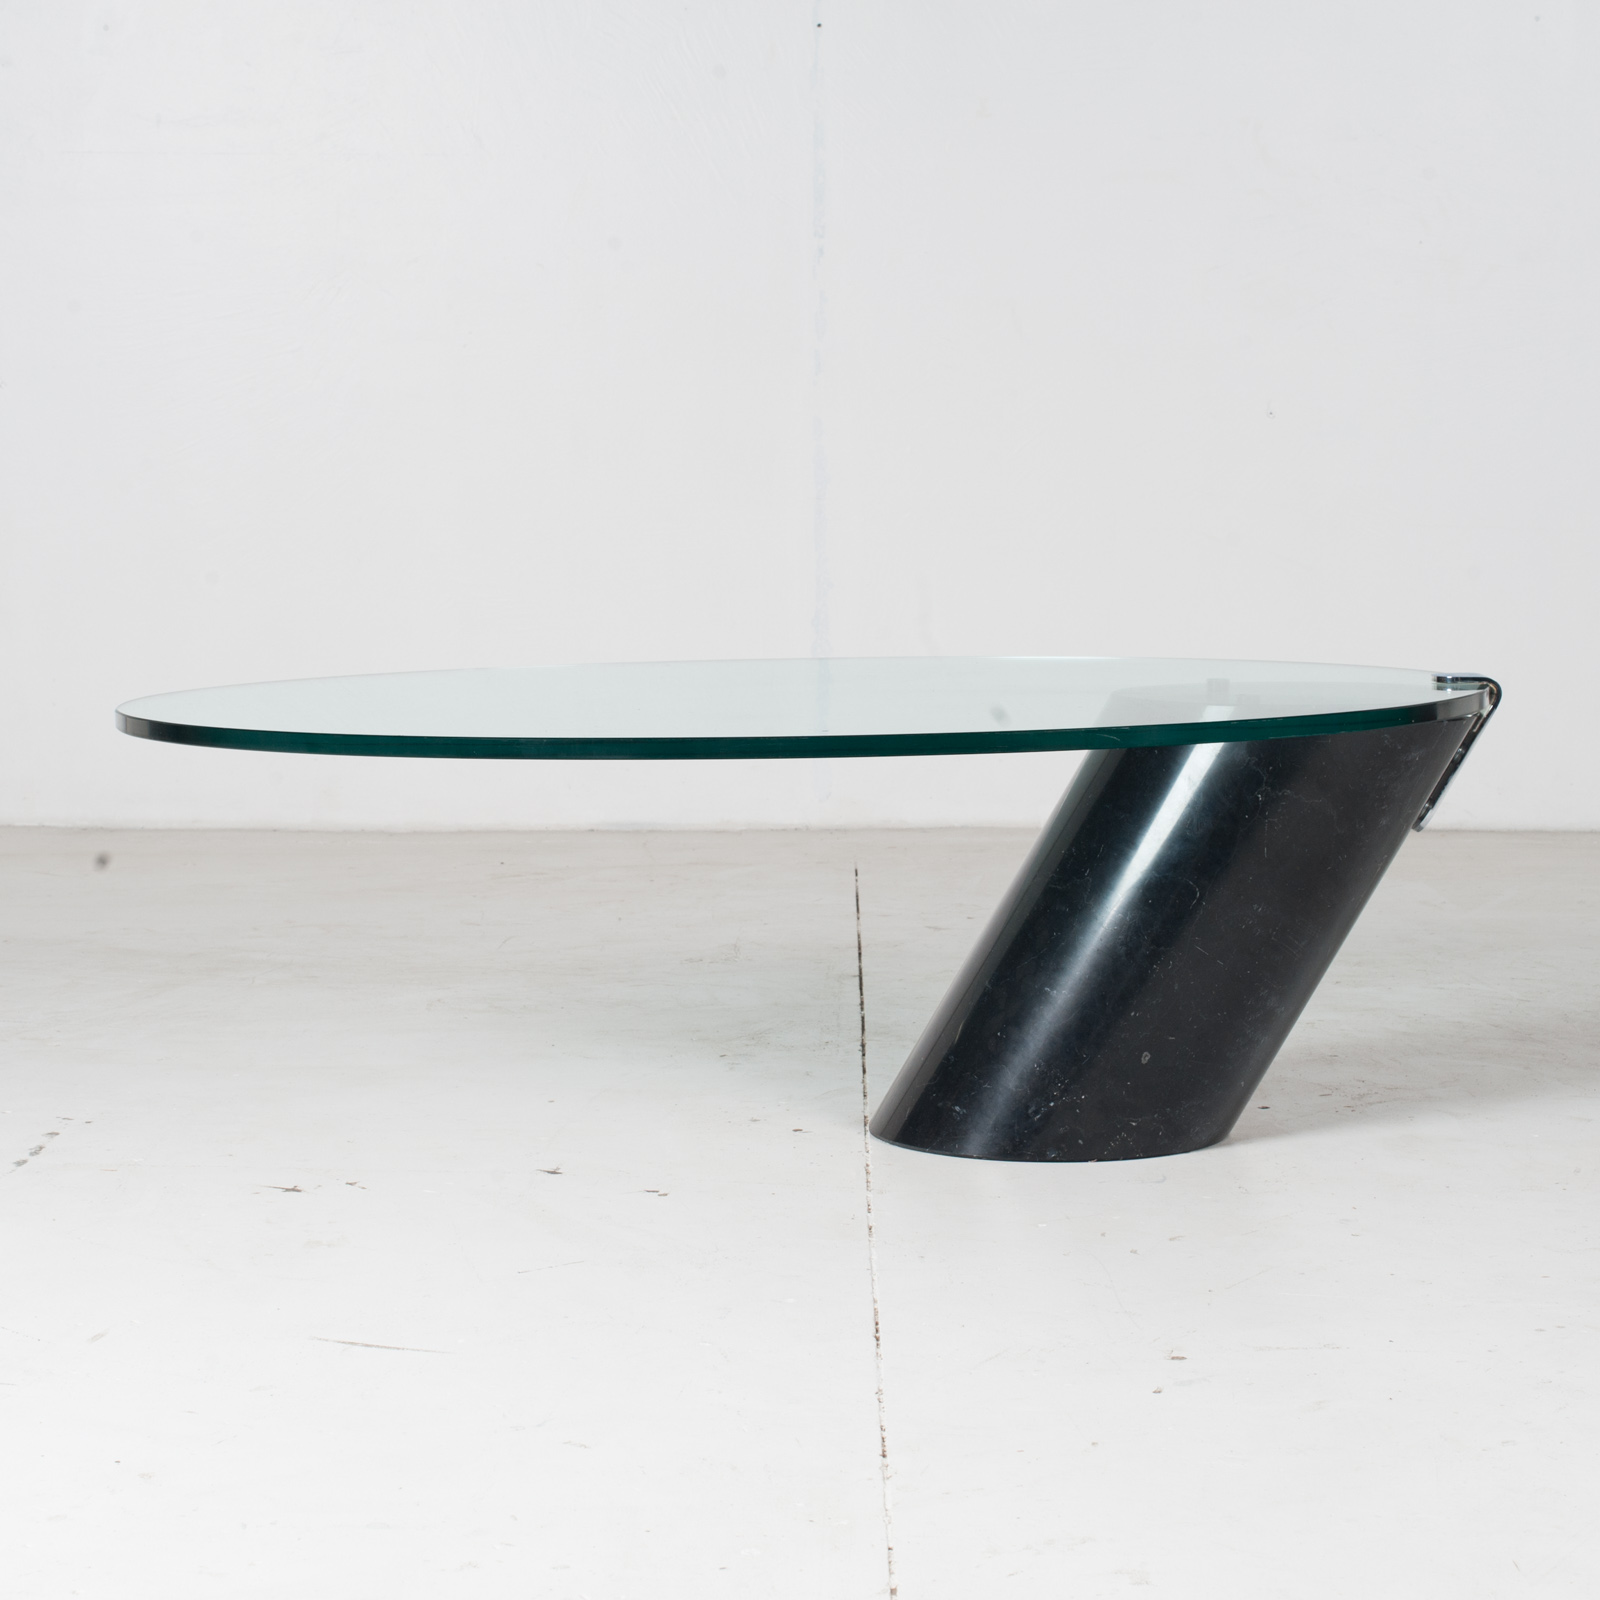 K1000 Oval Coffee Table By Ronald Schmitt In Glass And Black Marble, 1974, Switzerland1